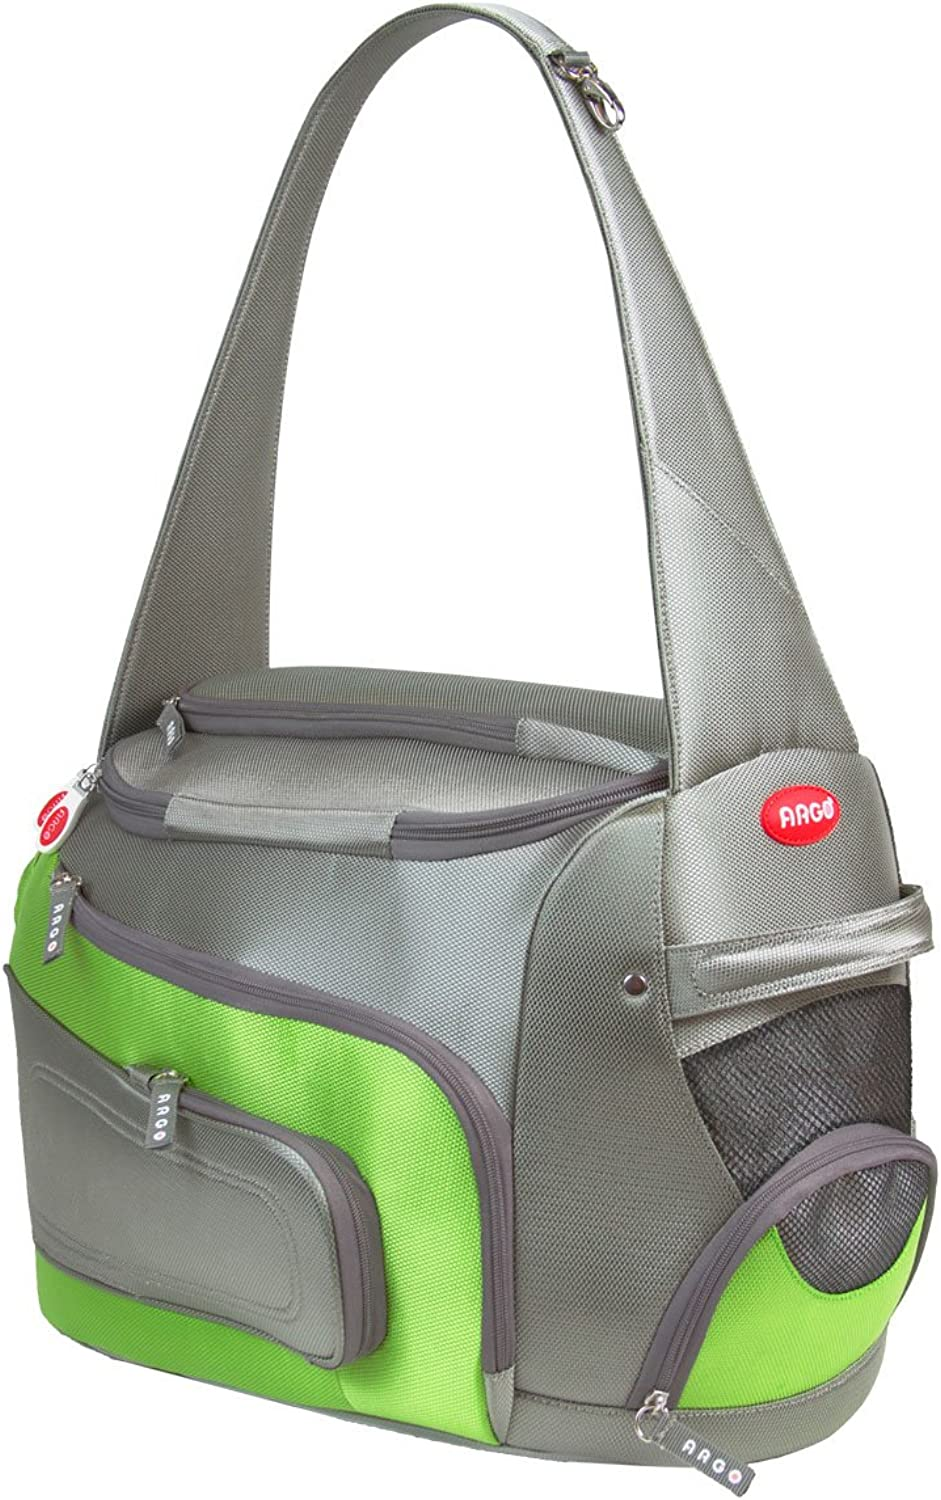 ARGO by Teafco DuffO Airline Approved (20Inch Large) Pet CarrierKiwi Green